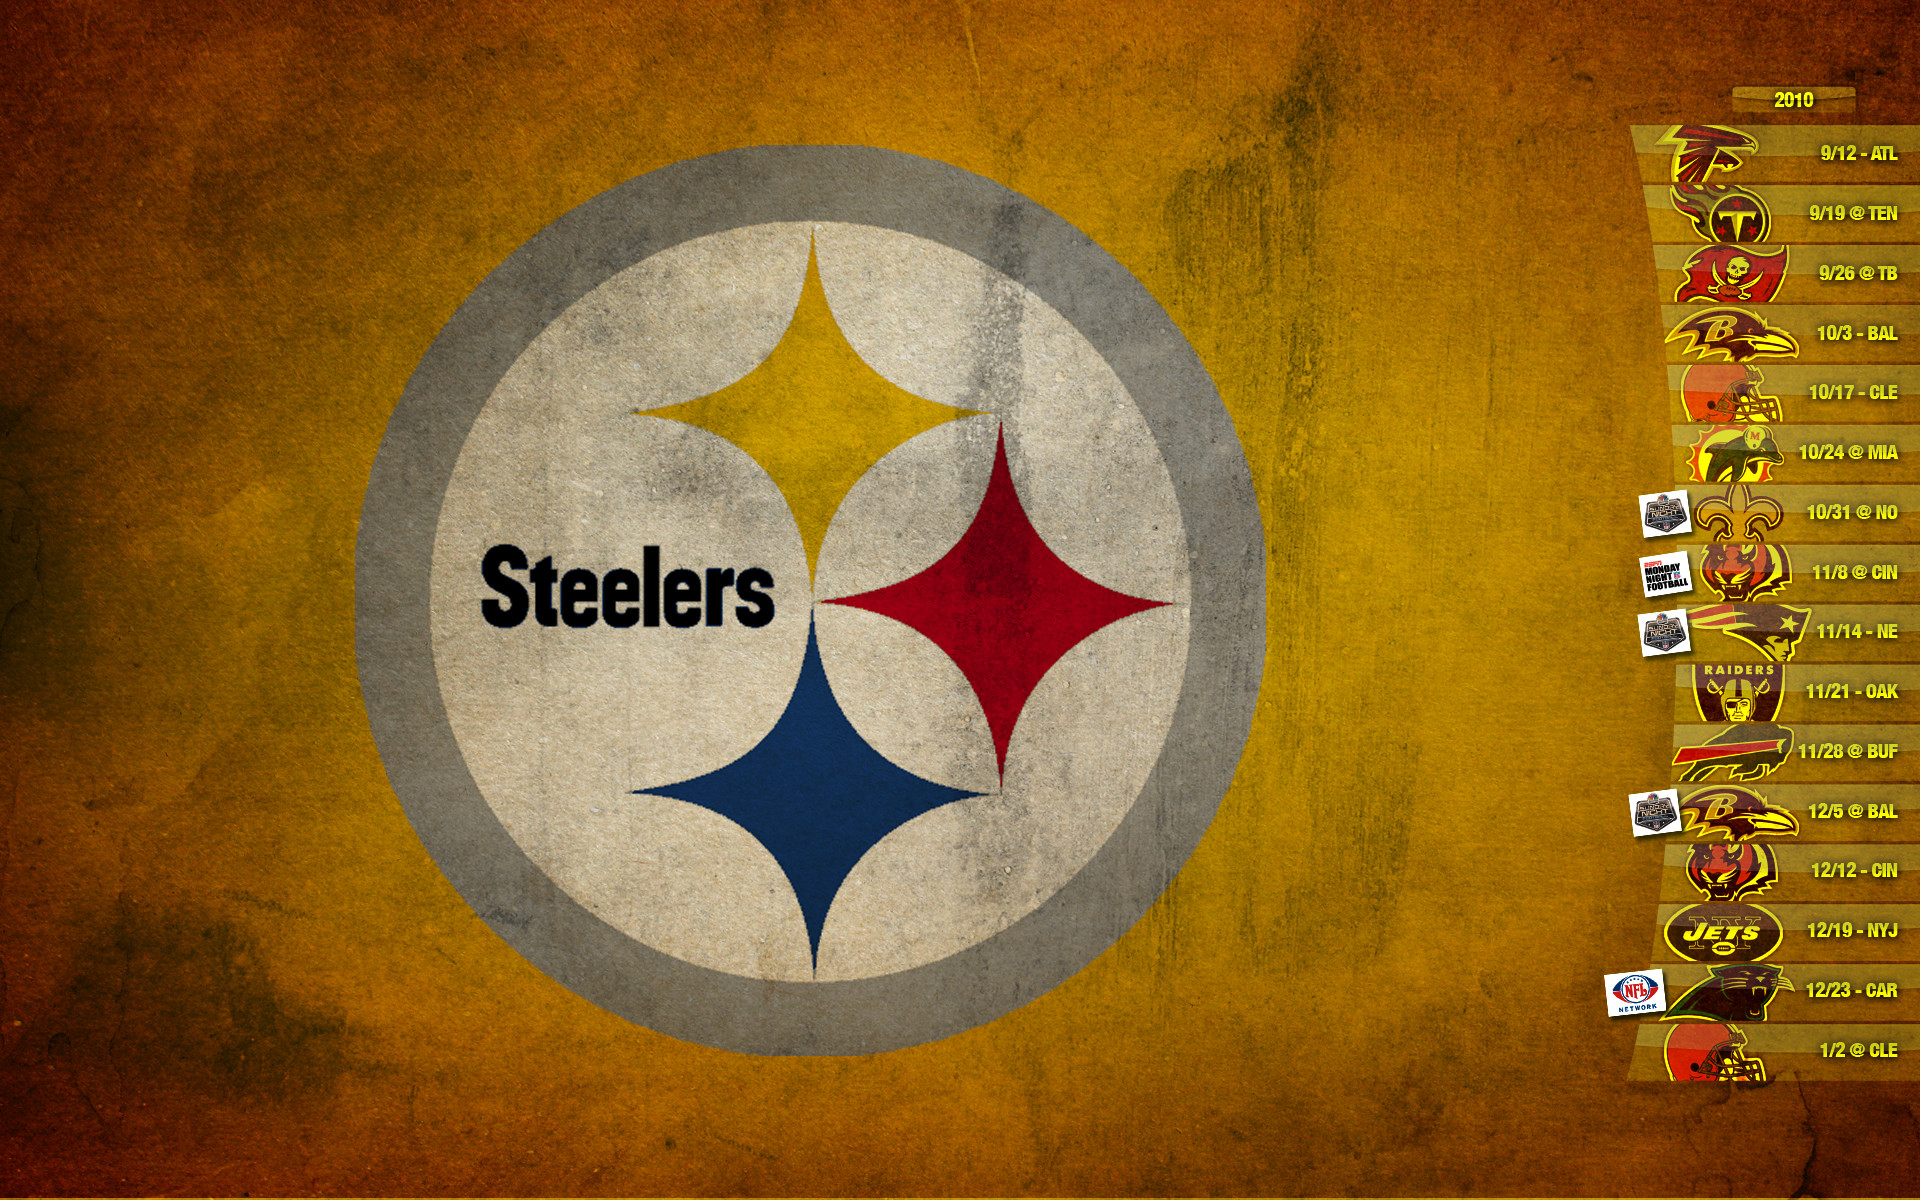 Steelers Wallpaper For Windows 8 53 Images